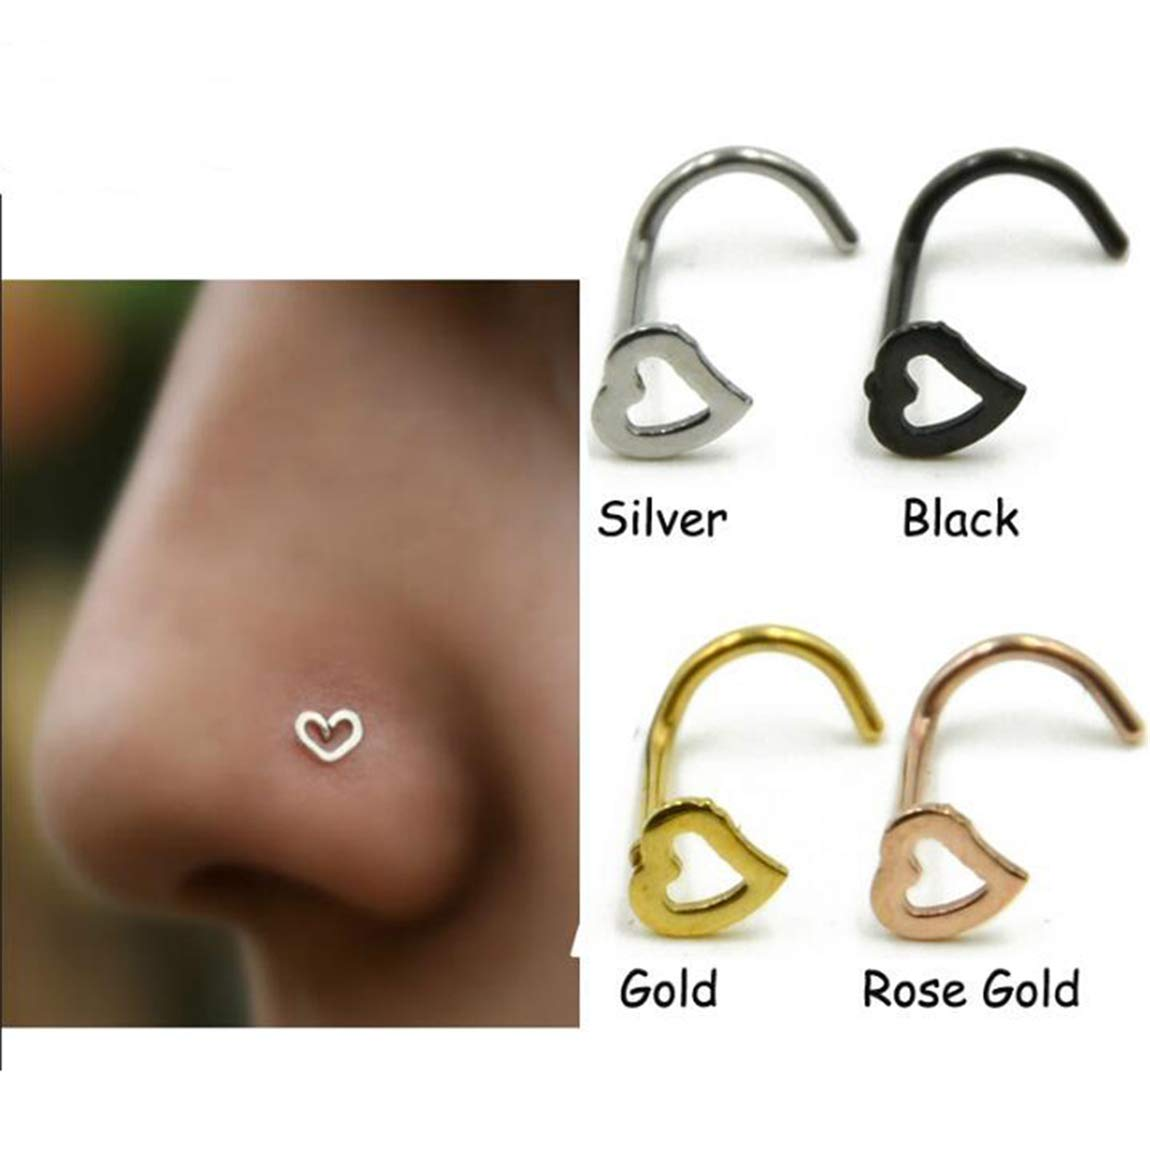 Weiy 4Pcs Heart Nose Studs Rings Screw Bend Piercing Jewelry Fahsion Charming Piercing Ornament Nose Ring Surgical Steel Curved Nose Nails Jewelry Accessories for Women Girls